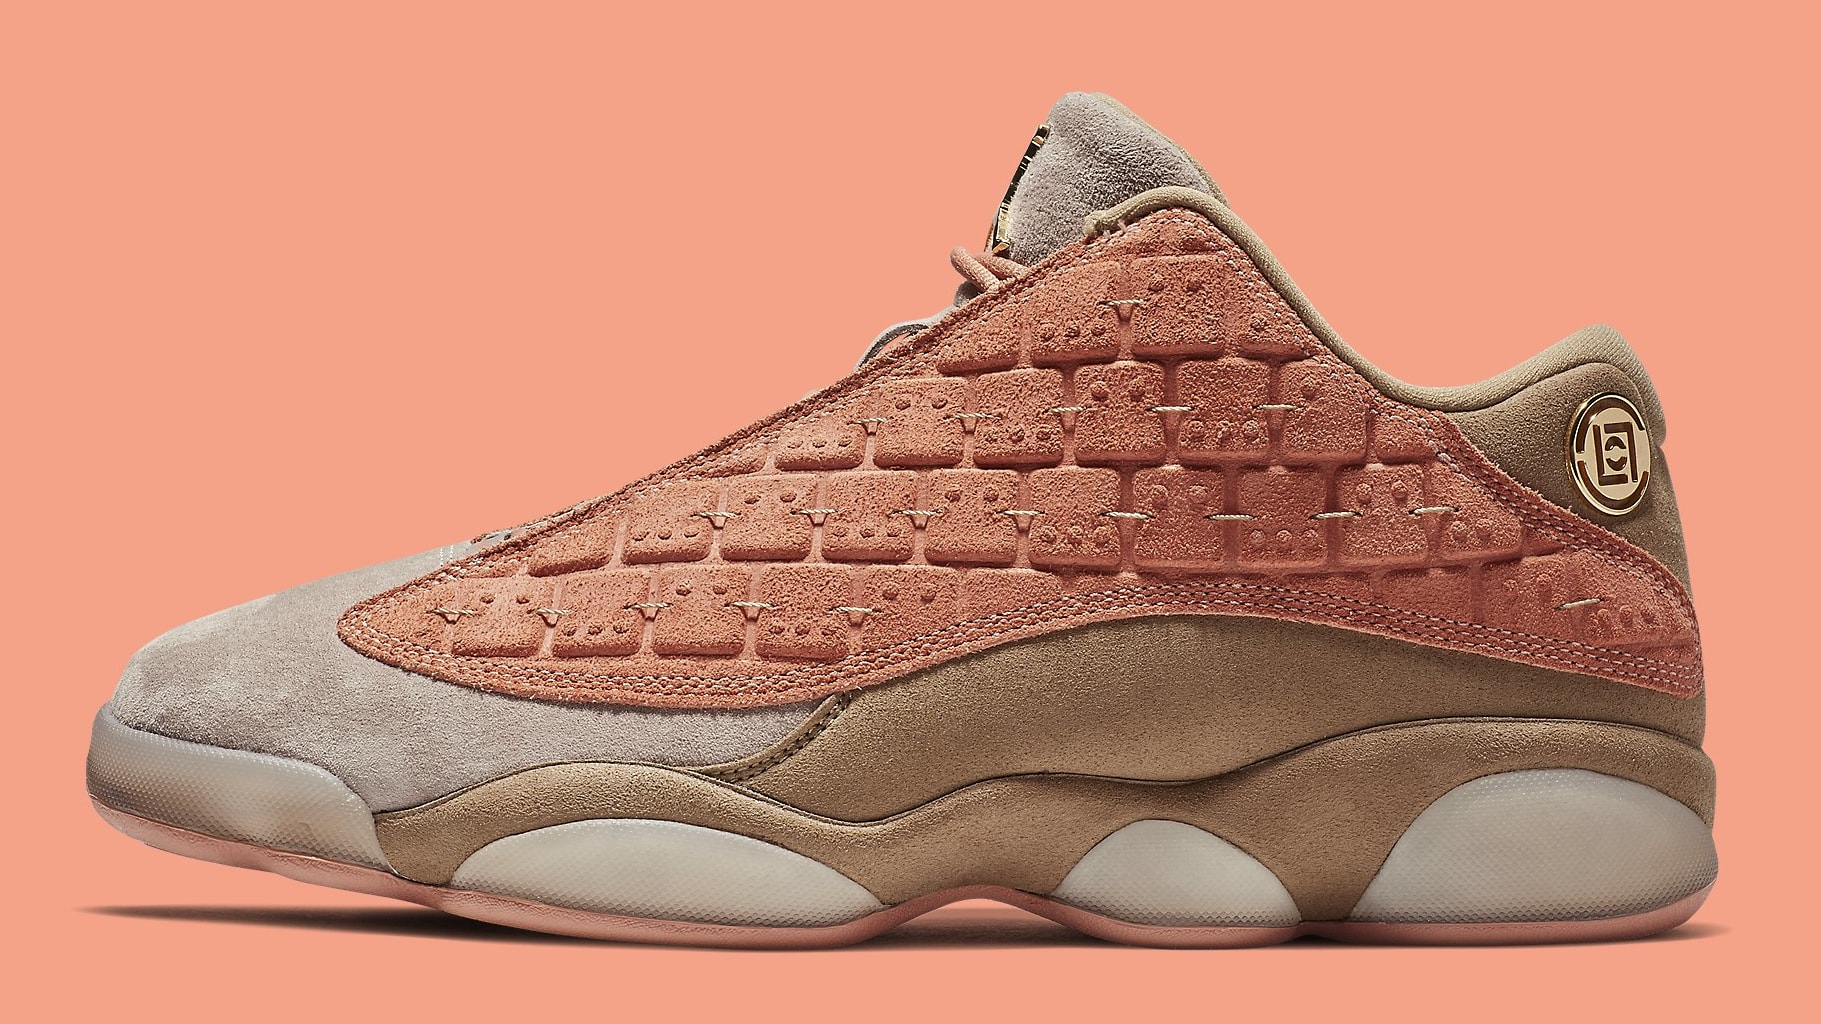 Air Jordan 13 XIII Low CLOT Release Date AT3102-200 Profile